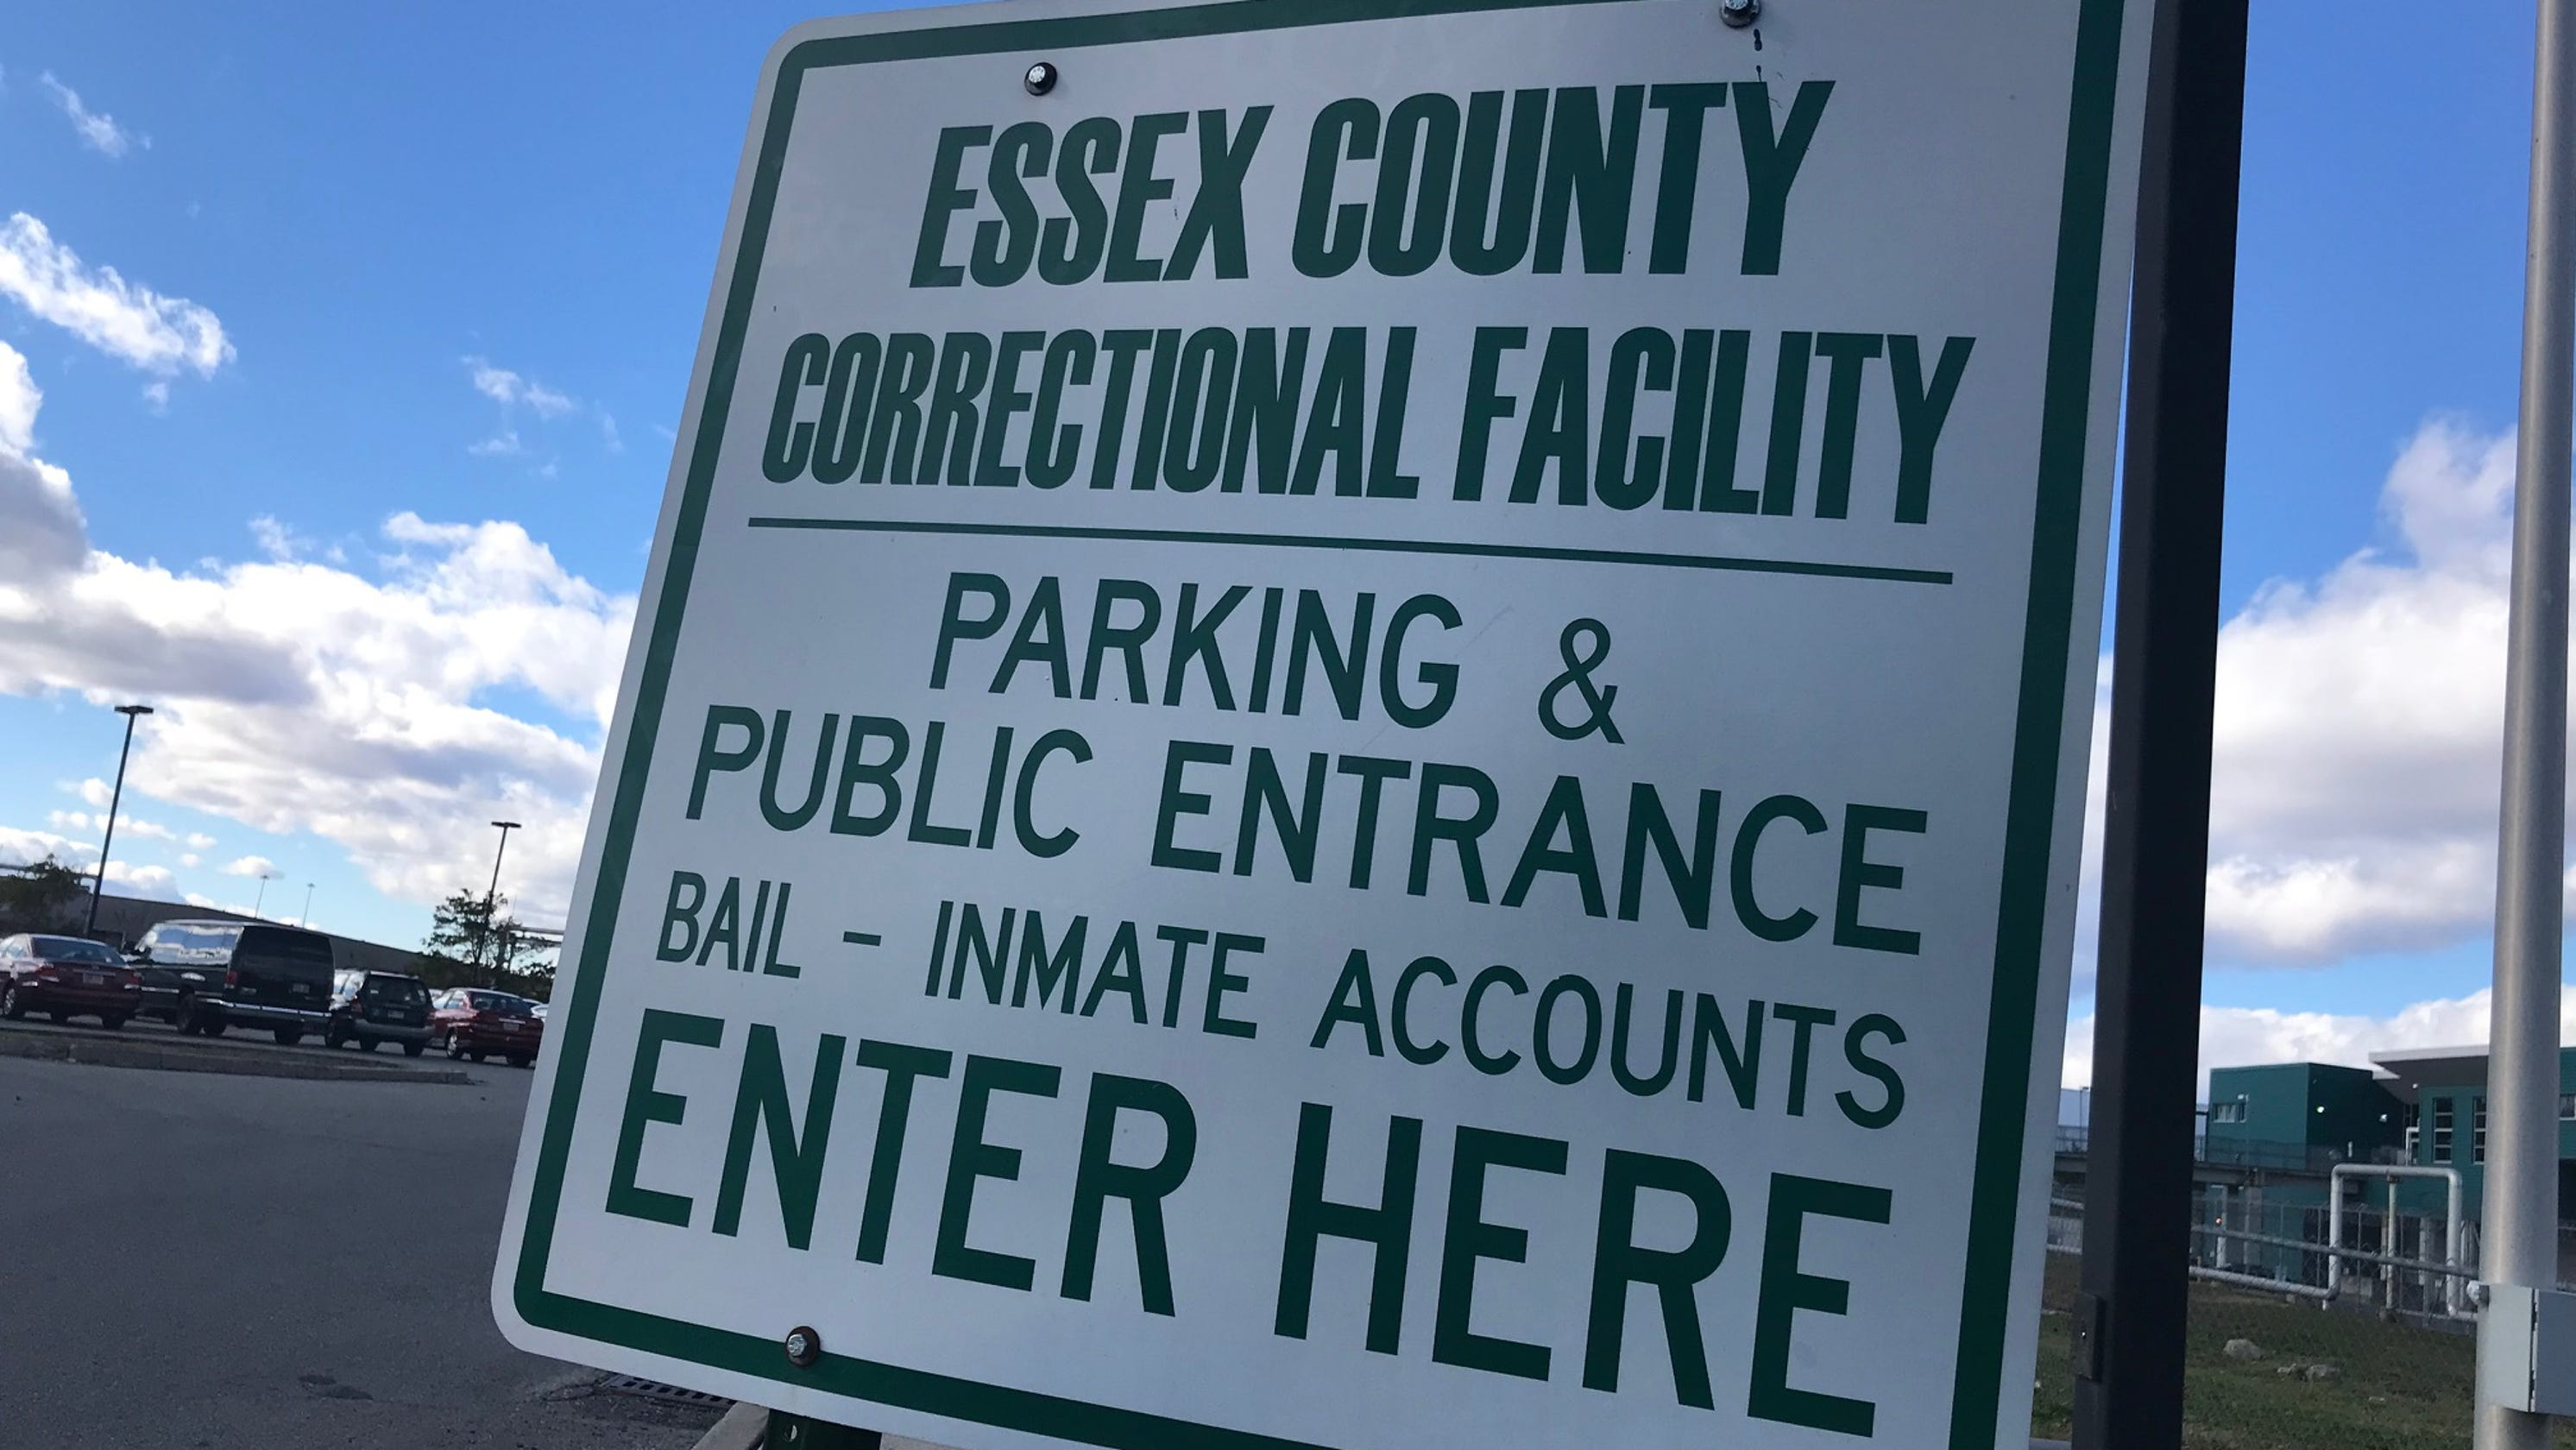 Lawsuit filed in death of Essex County NJ inmate who hanged